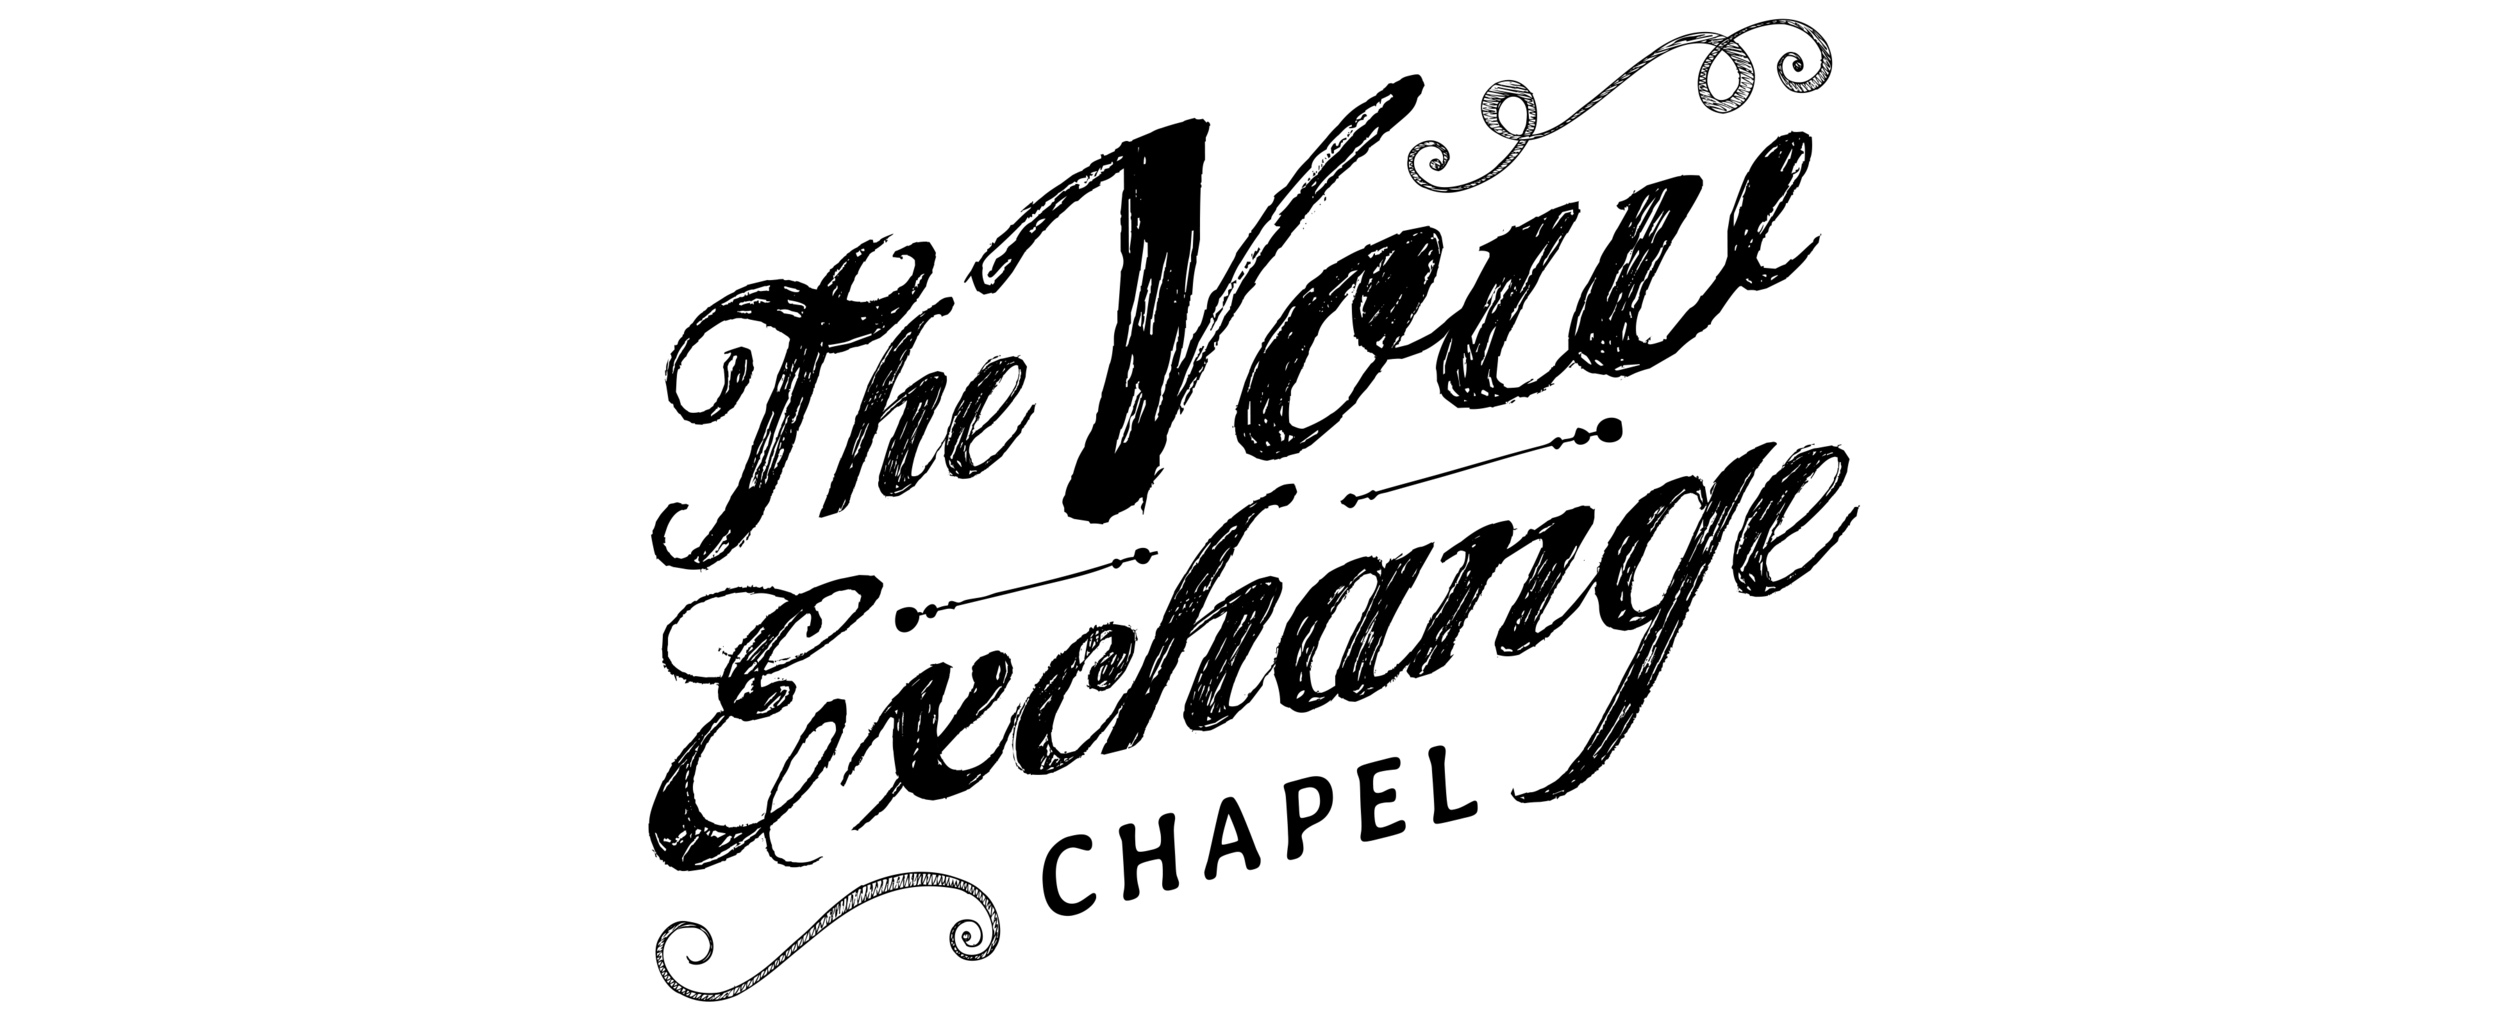 TVX-CHAPEL-logo+copy.jpg